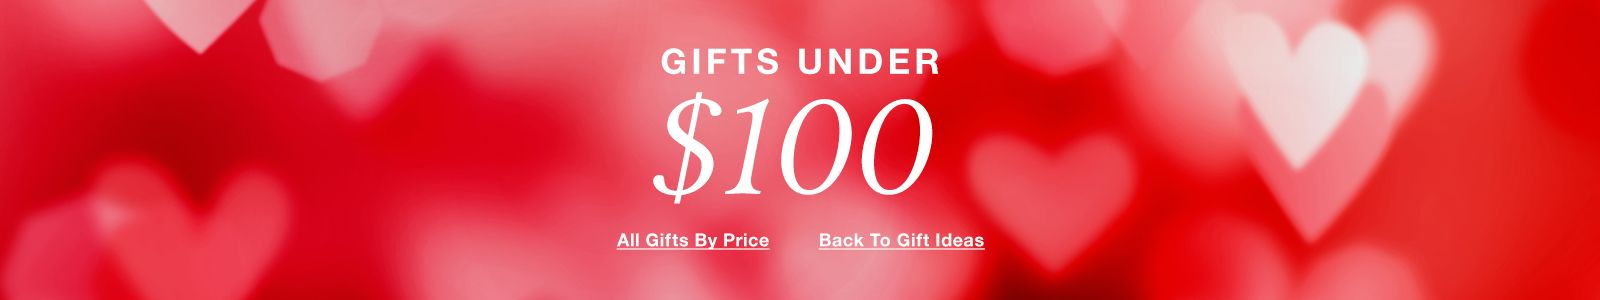 Gifts Under $100, All Gifts by Price, Back to Gift Ideas